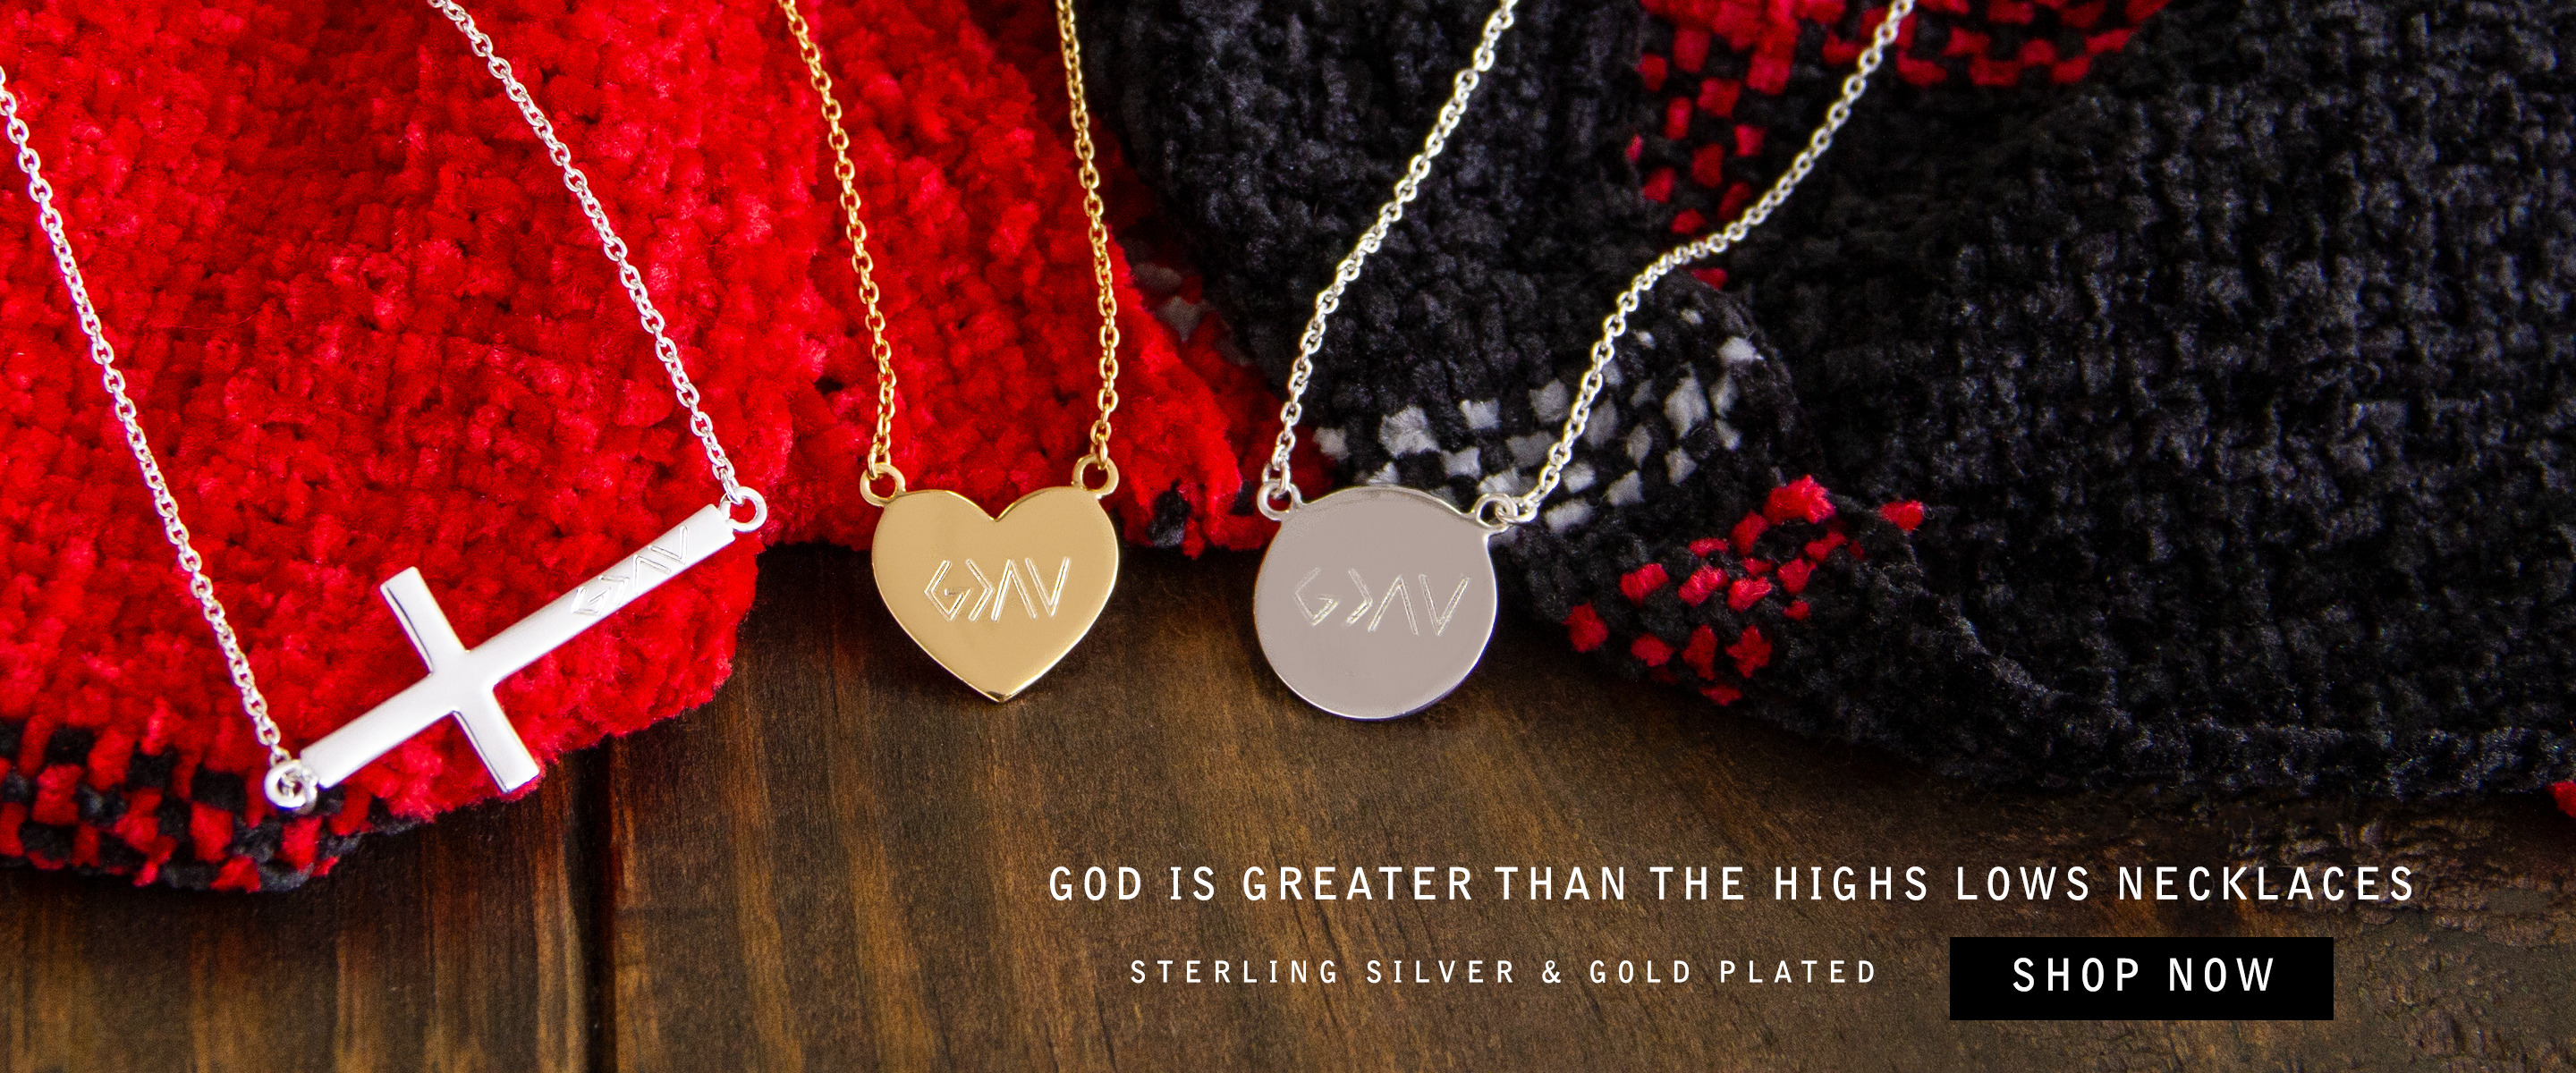 God is Great Necklaces